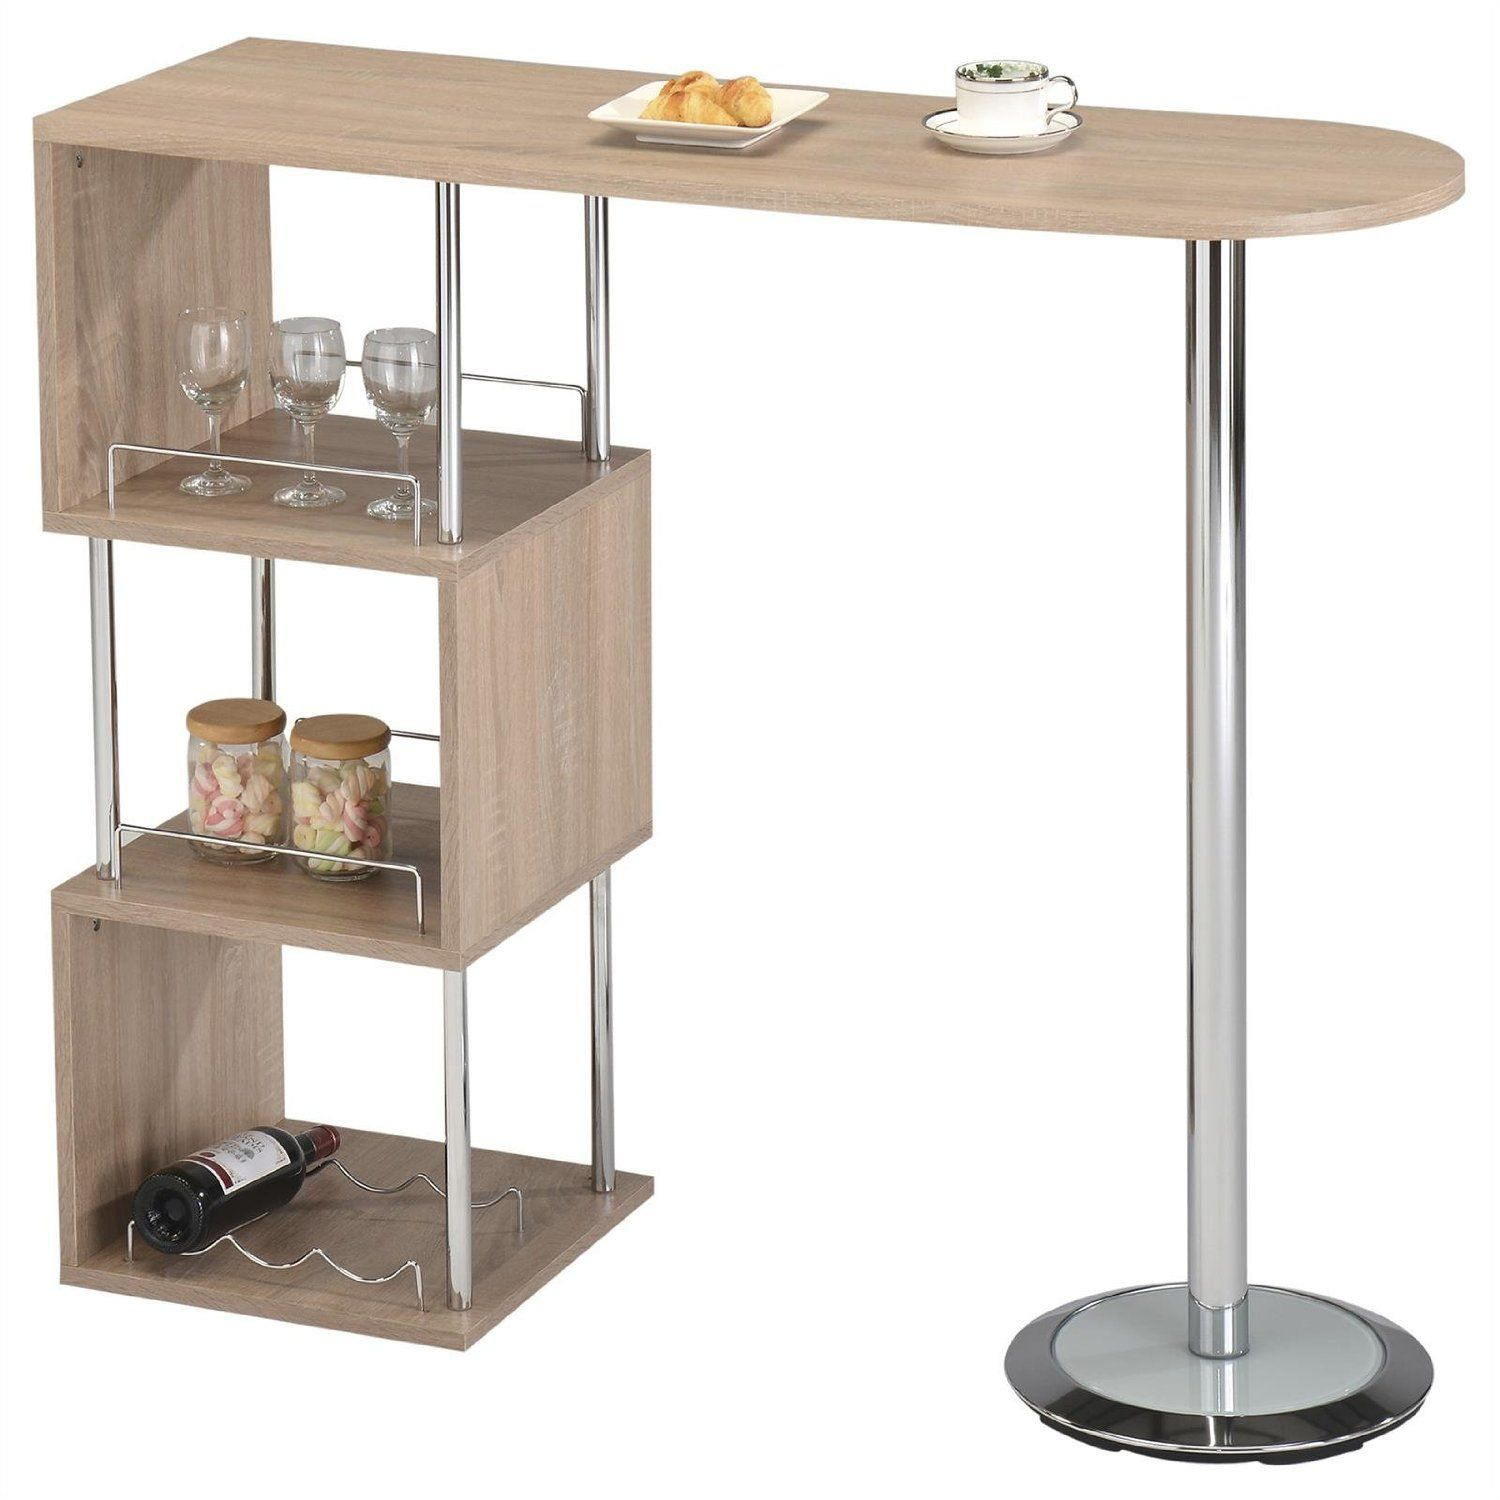 Table haute de bar mange debout comptoir vigando mdf d cor ch ne sonoma am - Table haute originale ...